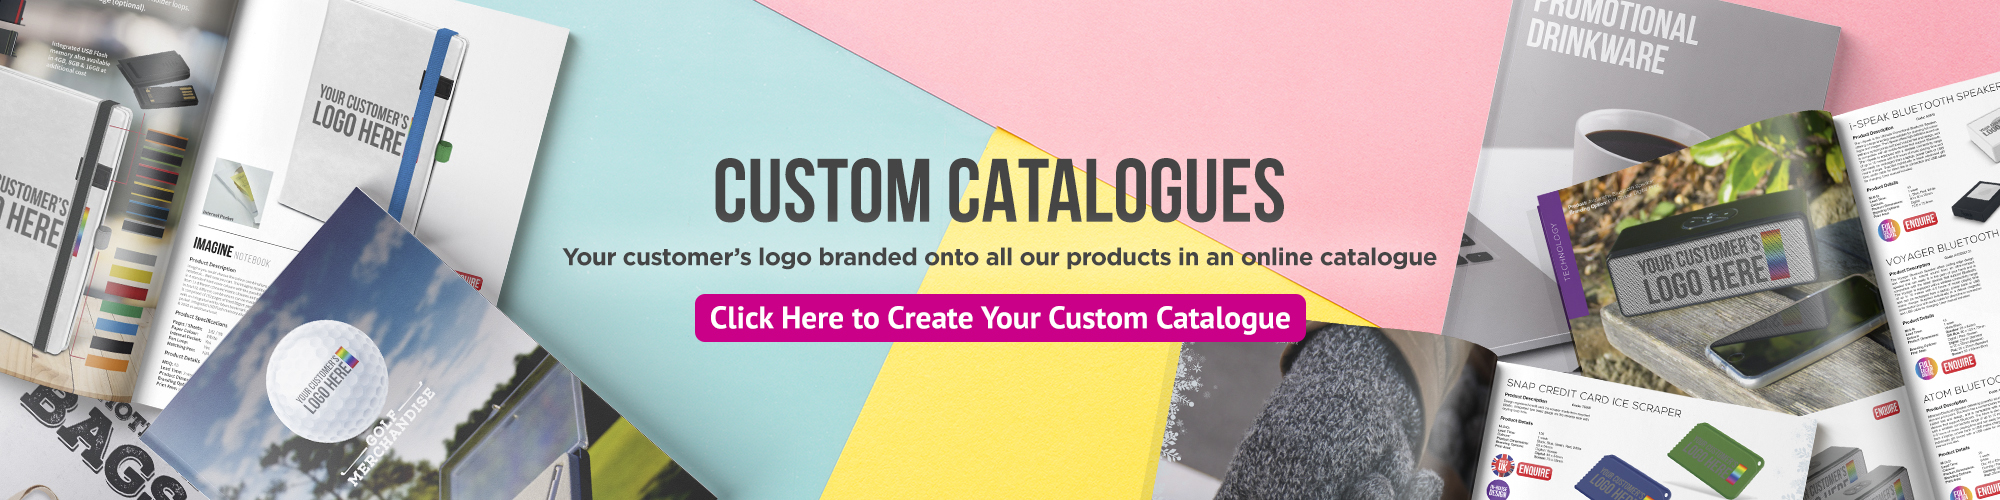 CUSTOM-CATALOGUES desktop banner